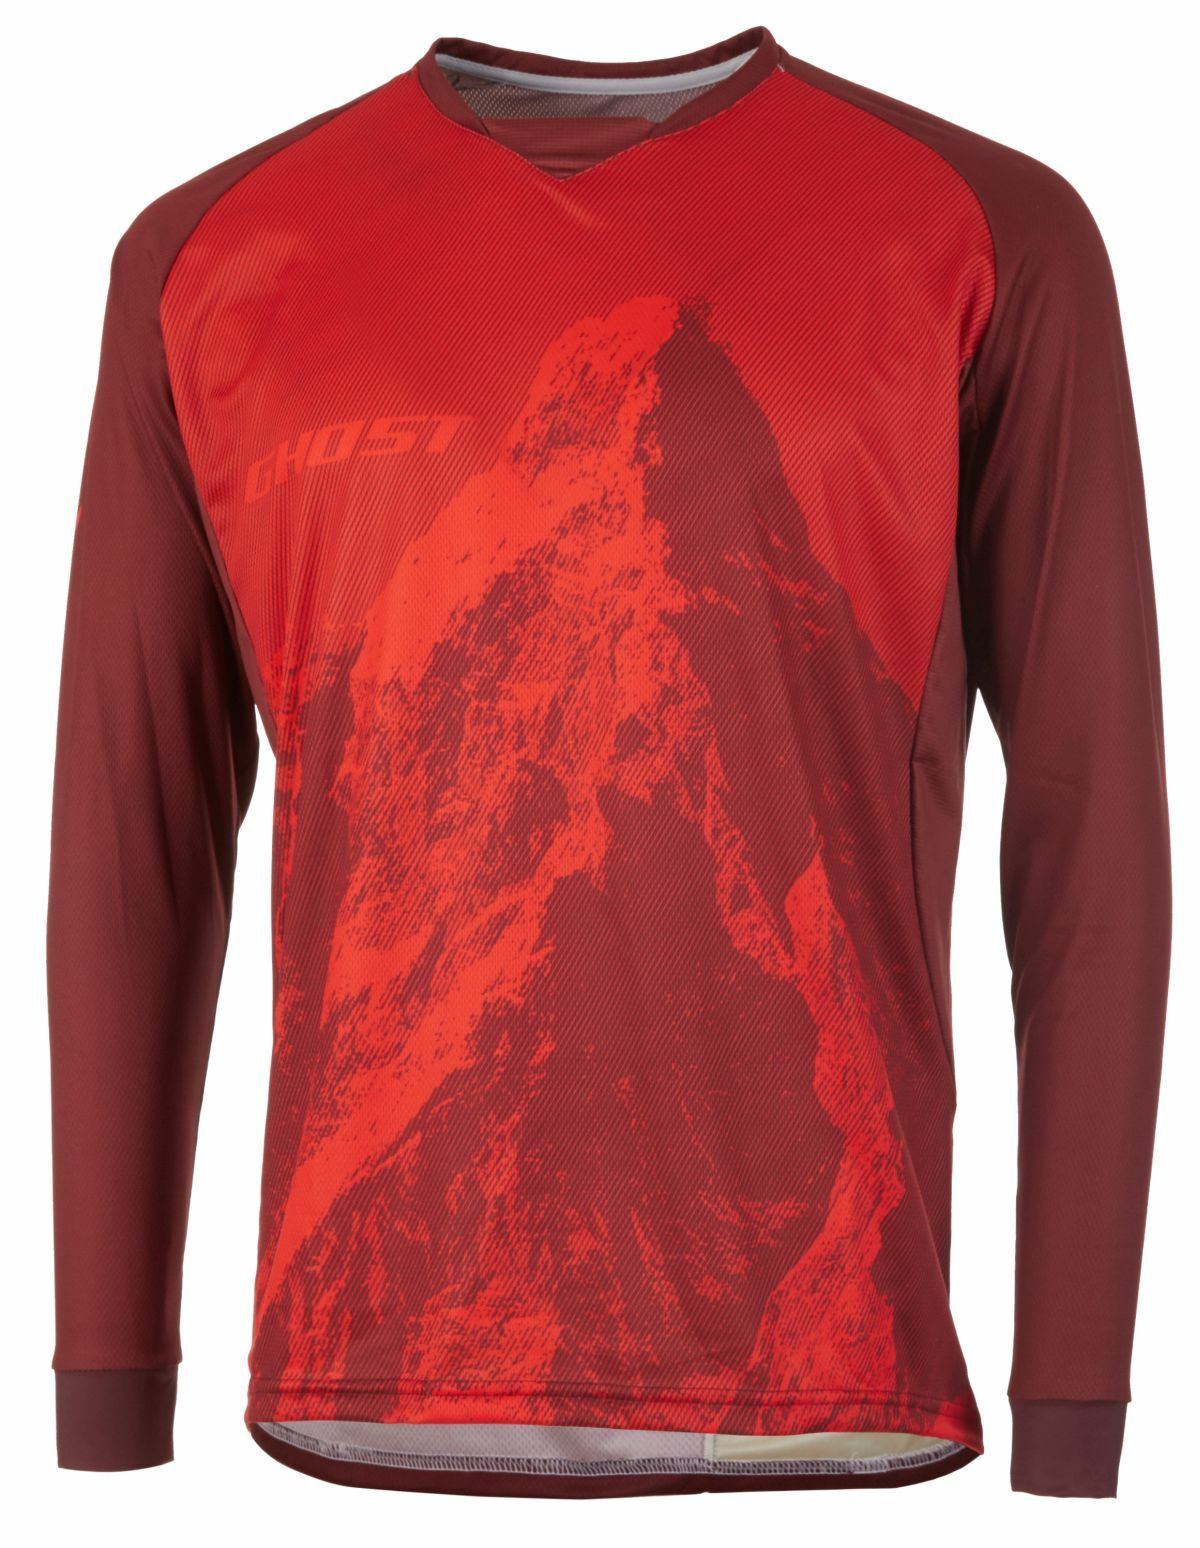 Ghost MTN ride Line Jersey Long, Riot rouge Dark rouge Bike Jersey, LONSLEEVE, S